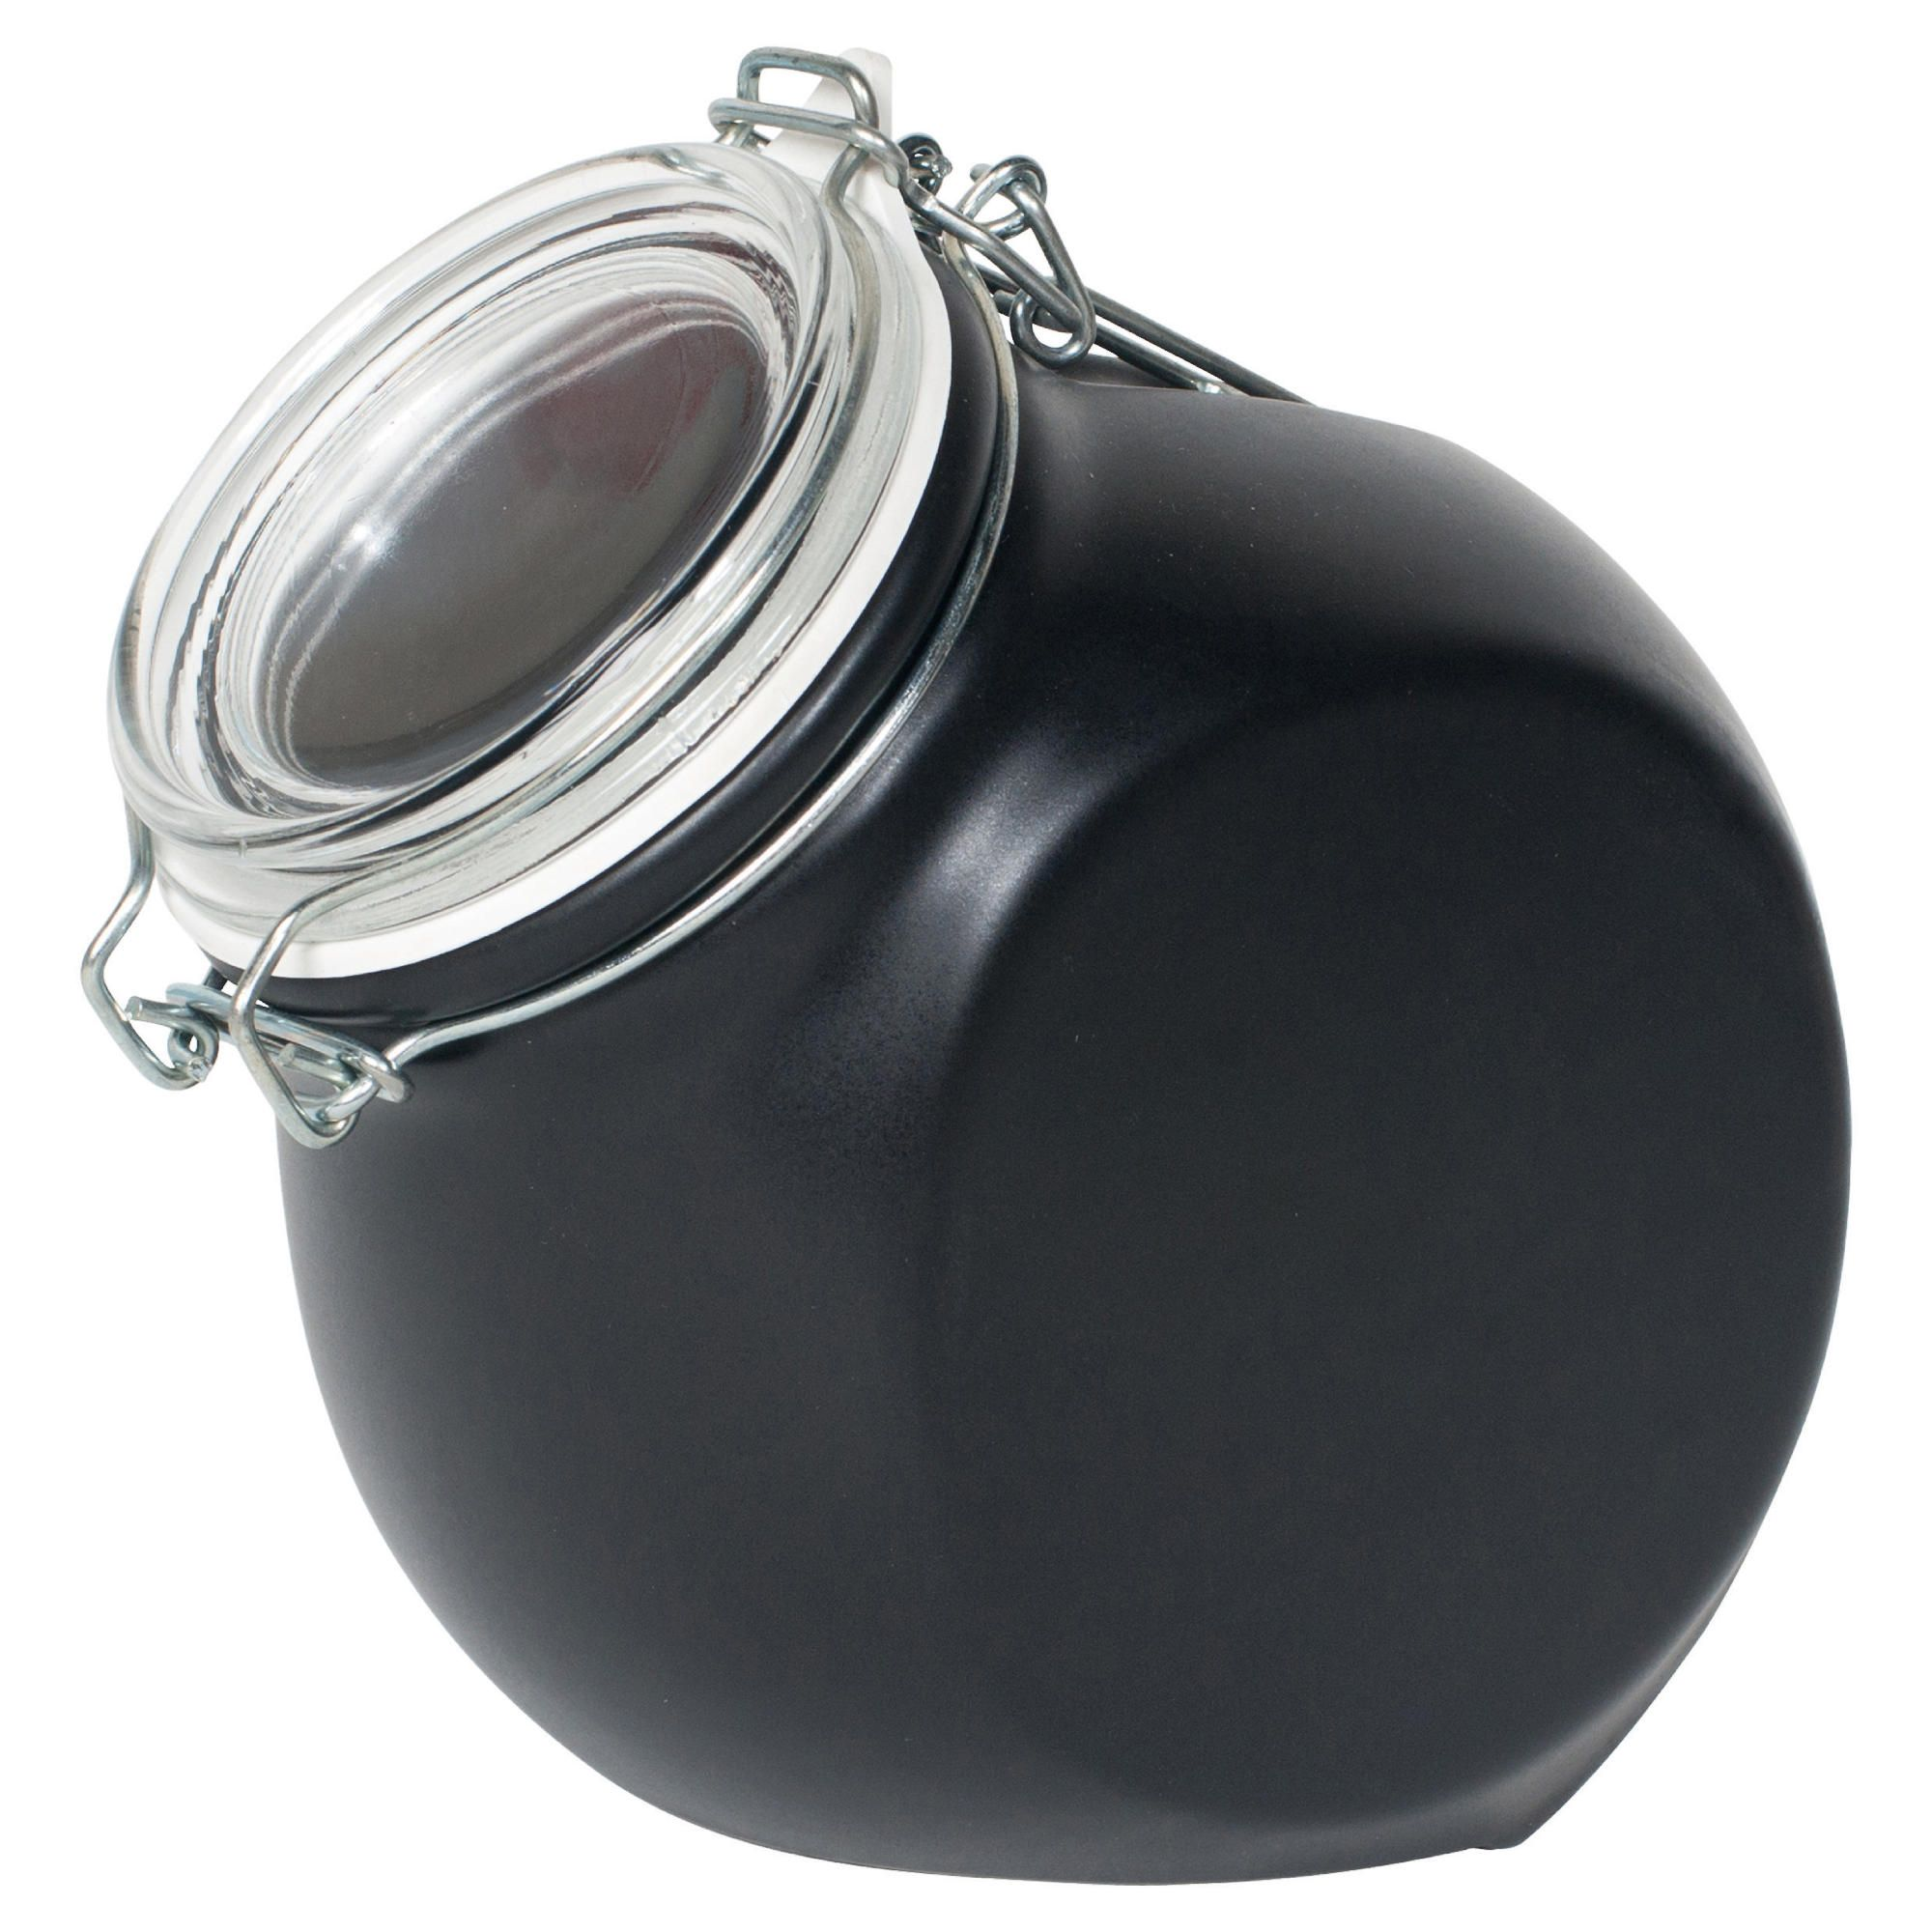 Nigella Lawson Living Kitchen 1.5L Storage Jar, Black